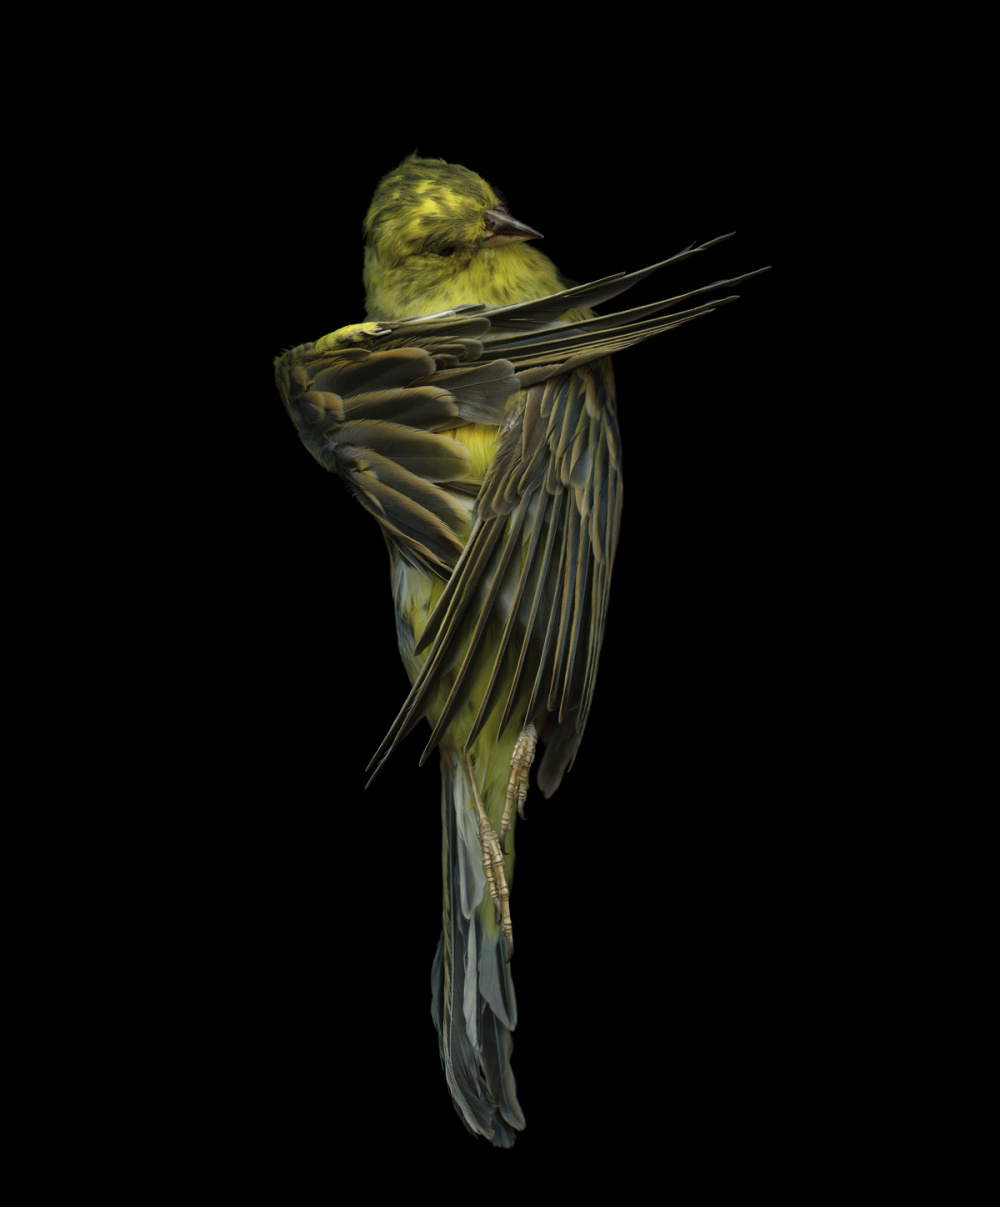 Edgar Leciejewski, Yellowhammer #07, 2009. From the series